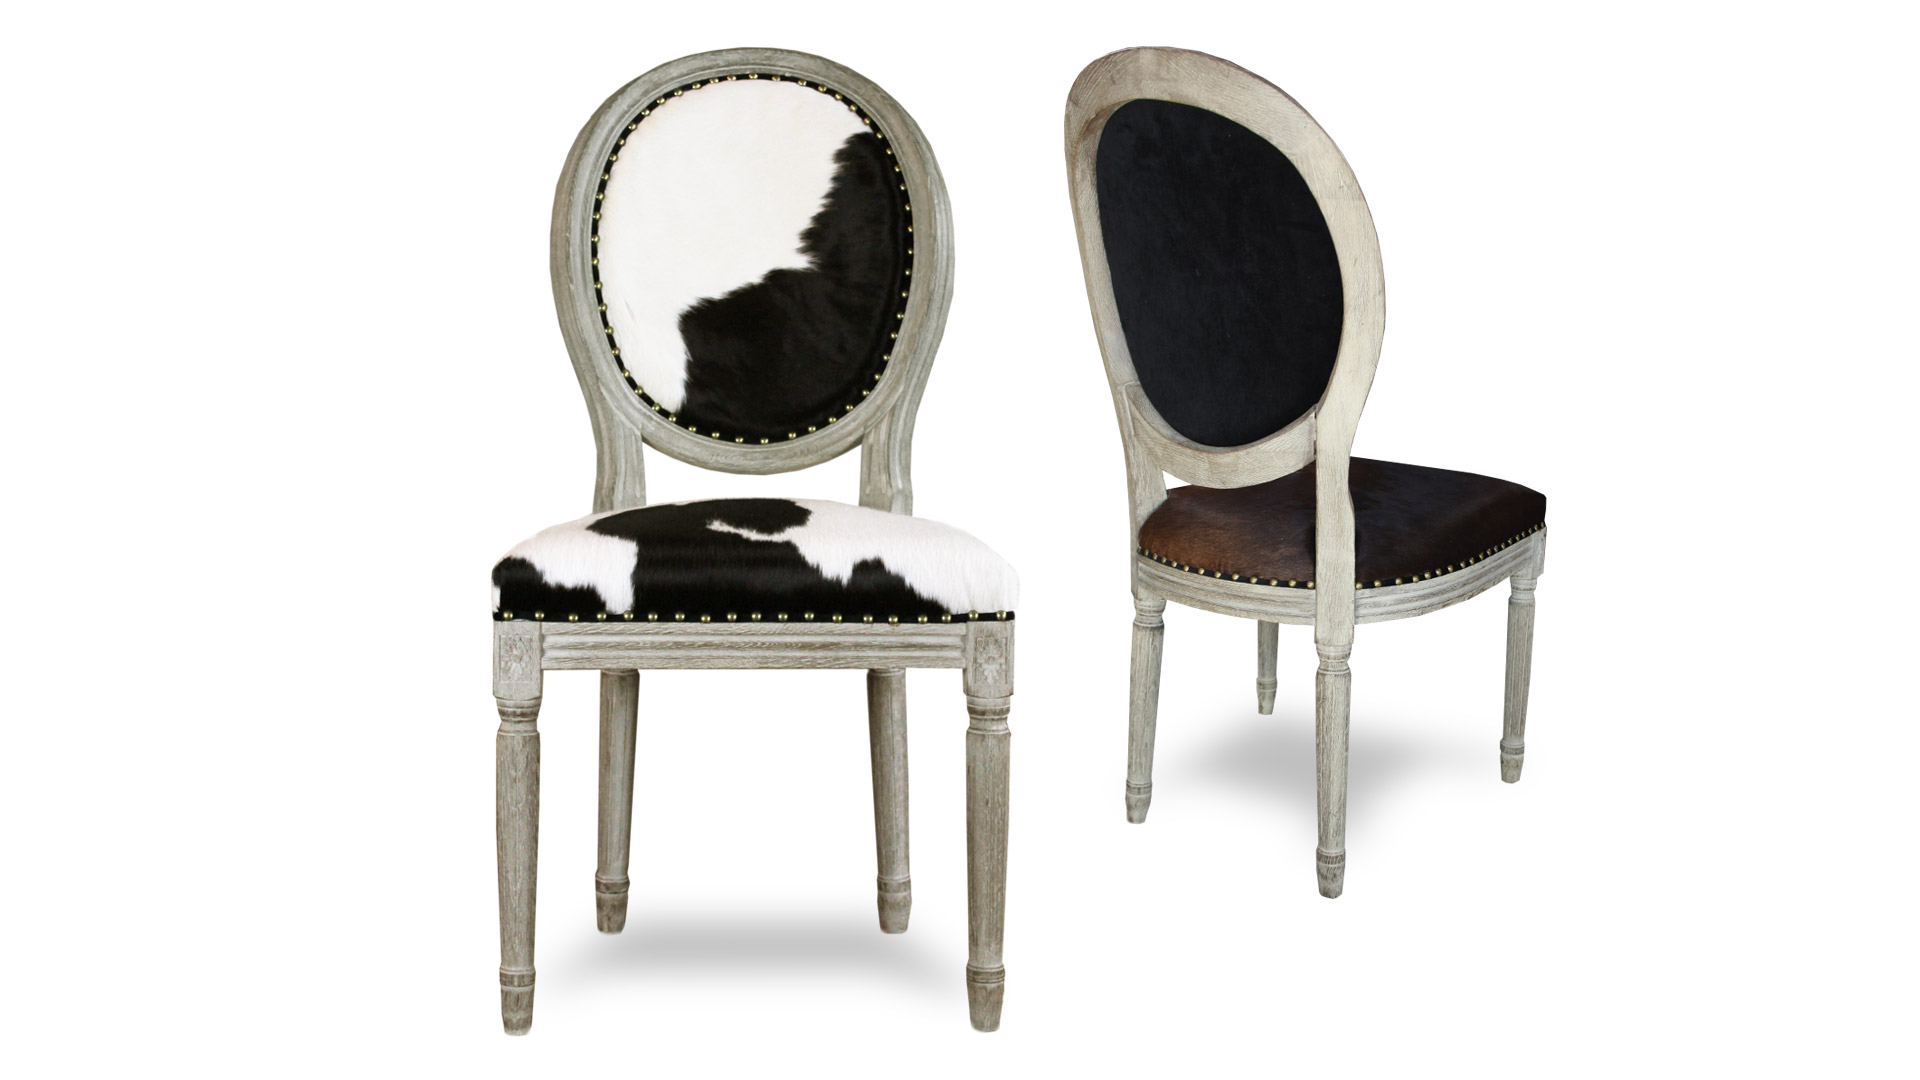 le blog mobiliermoss chaise medaillon peau de vache pied bois cow mobiliermoss. Black Bedroom Furniture Sets. Home Design Ideas